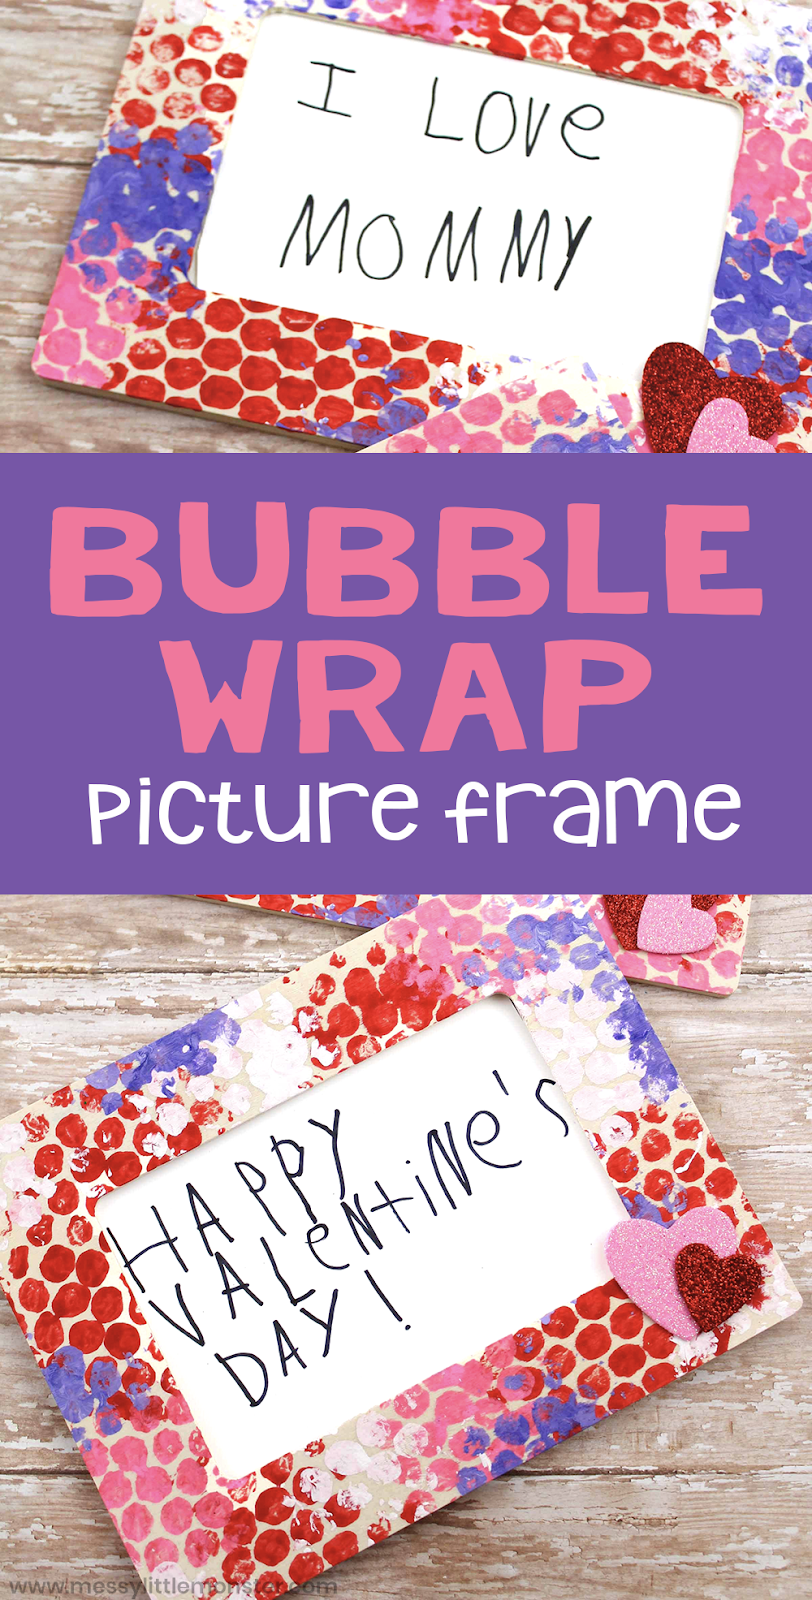 Bubble wrap painting picture frame. Toddlers and preschoolers will love bubble wrap painting. This is such a fun painting technique for kids. A handmade frame makes the perfect Valentines day craft or Mothers Day craft.